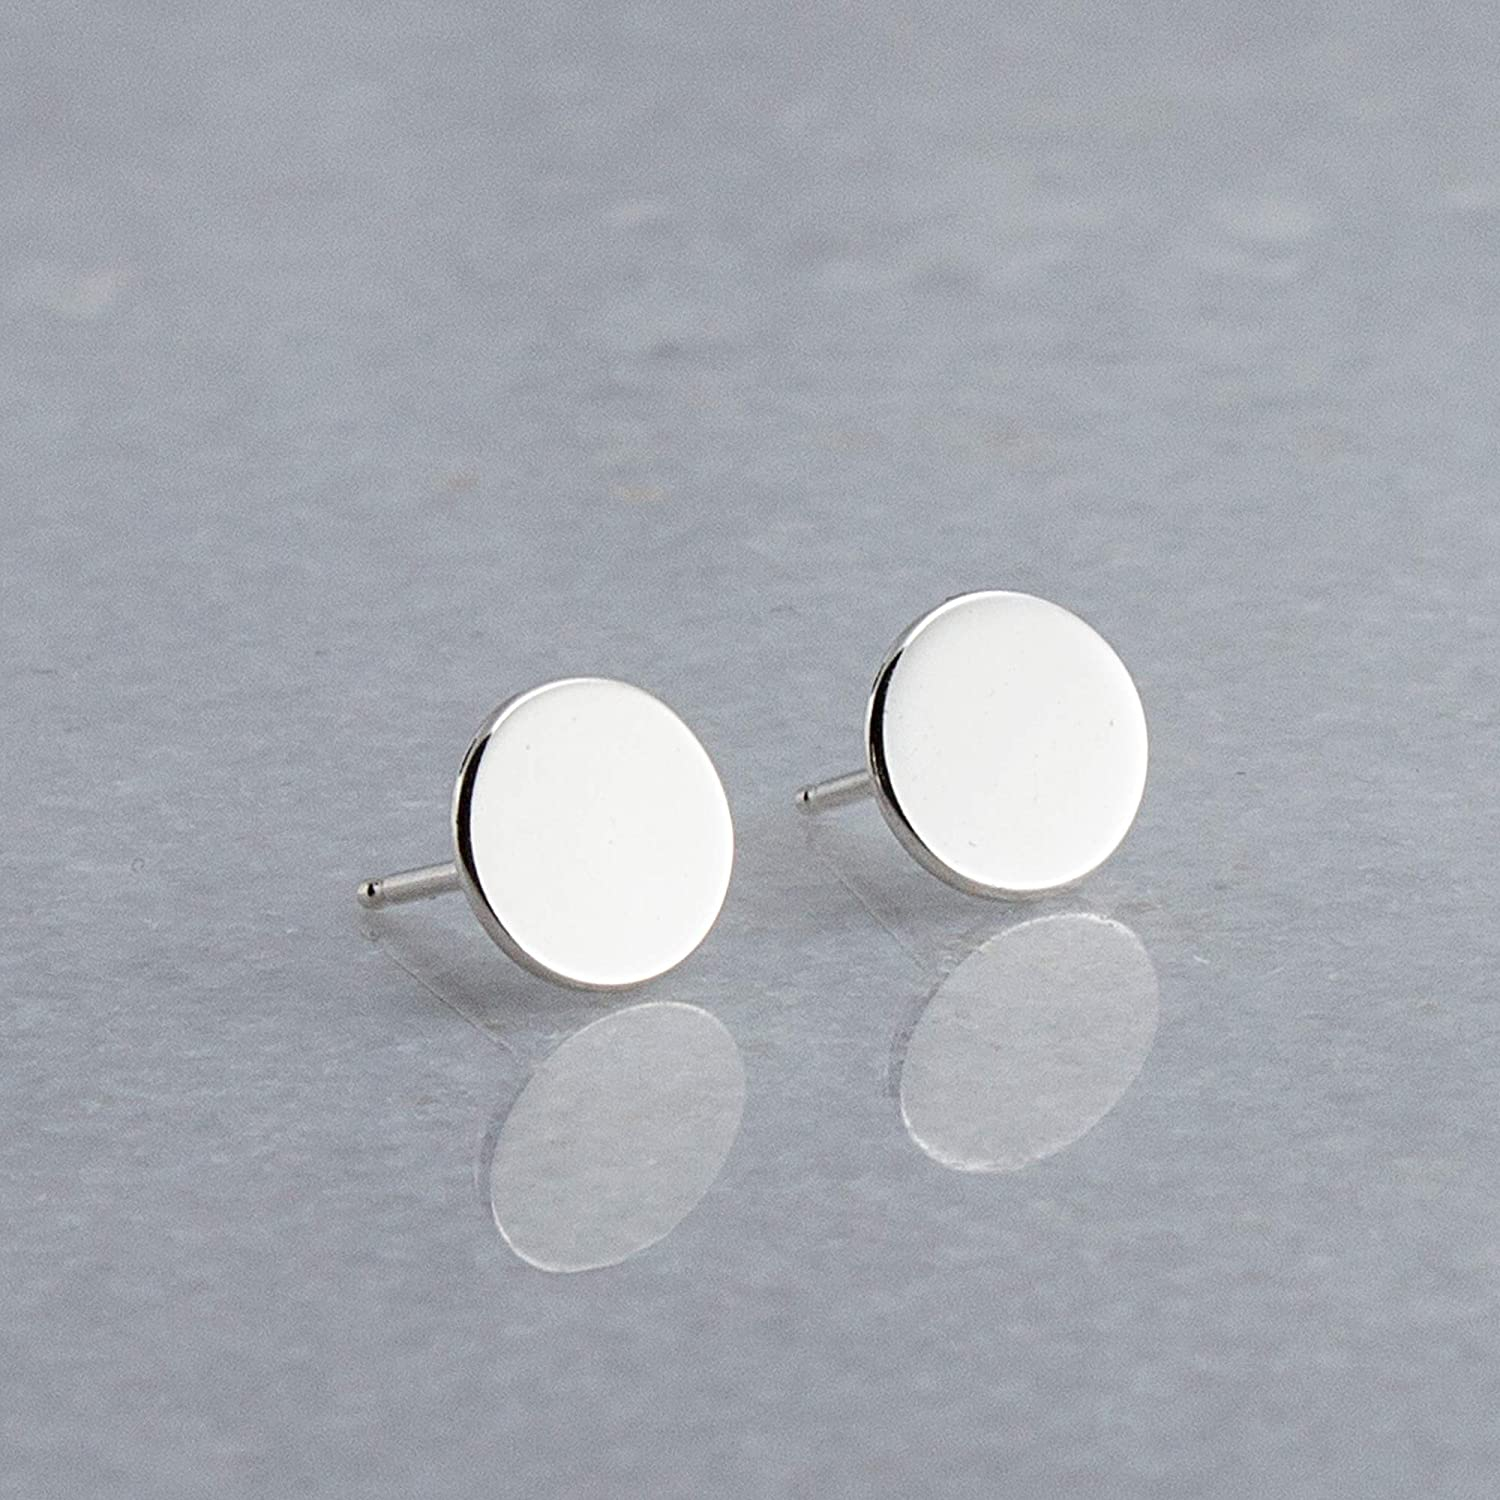 47c498395 Amazon.com: Sterling Silver Round Disc Stud Earrings SS-7M-SHINY STUDS:  Handmade